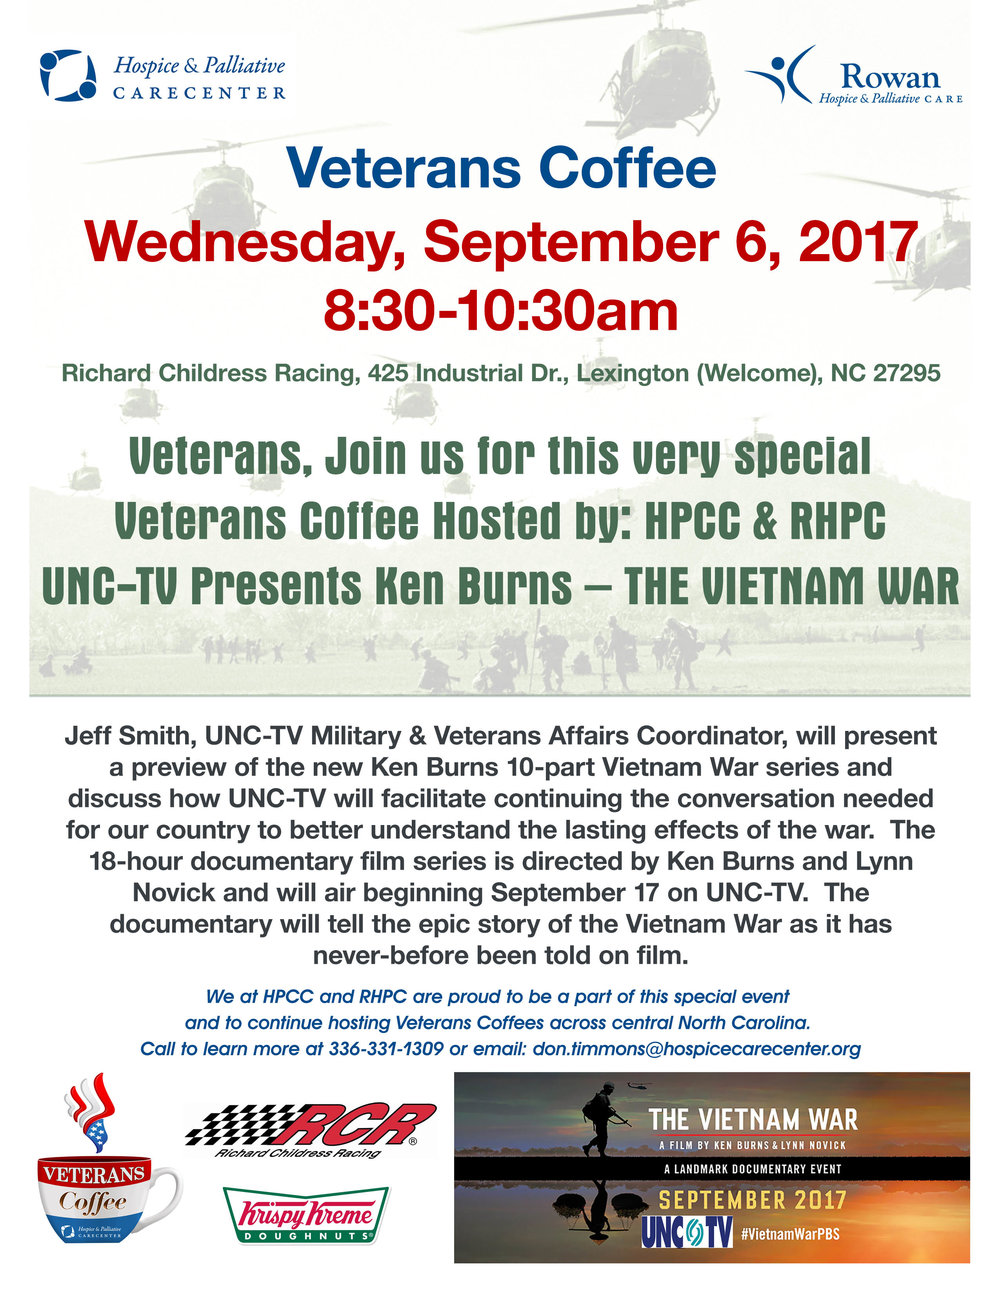 Flyer Vets Coffee 9.6 - UNC TV Ken Burns.jpg